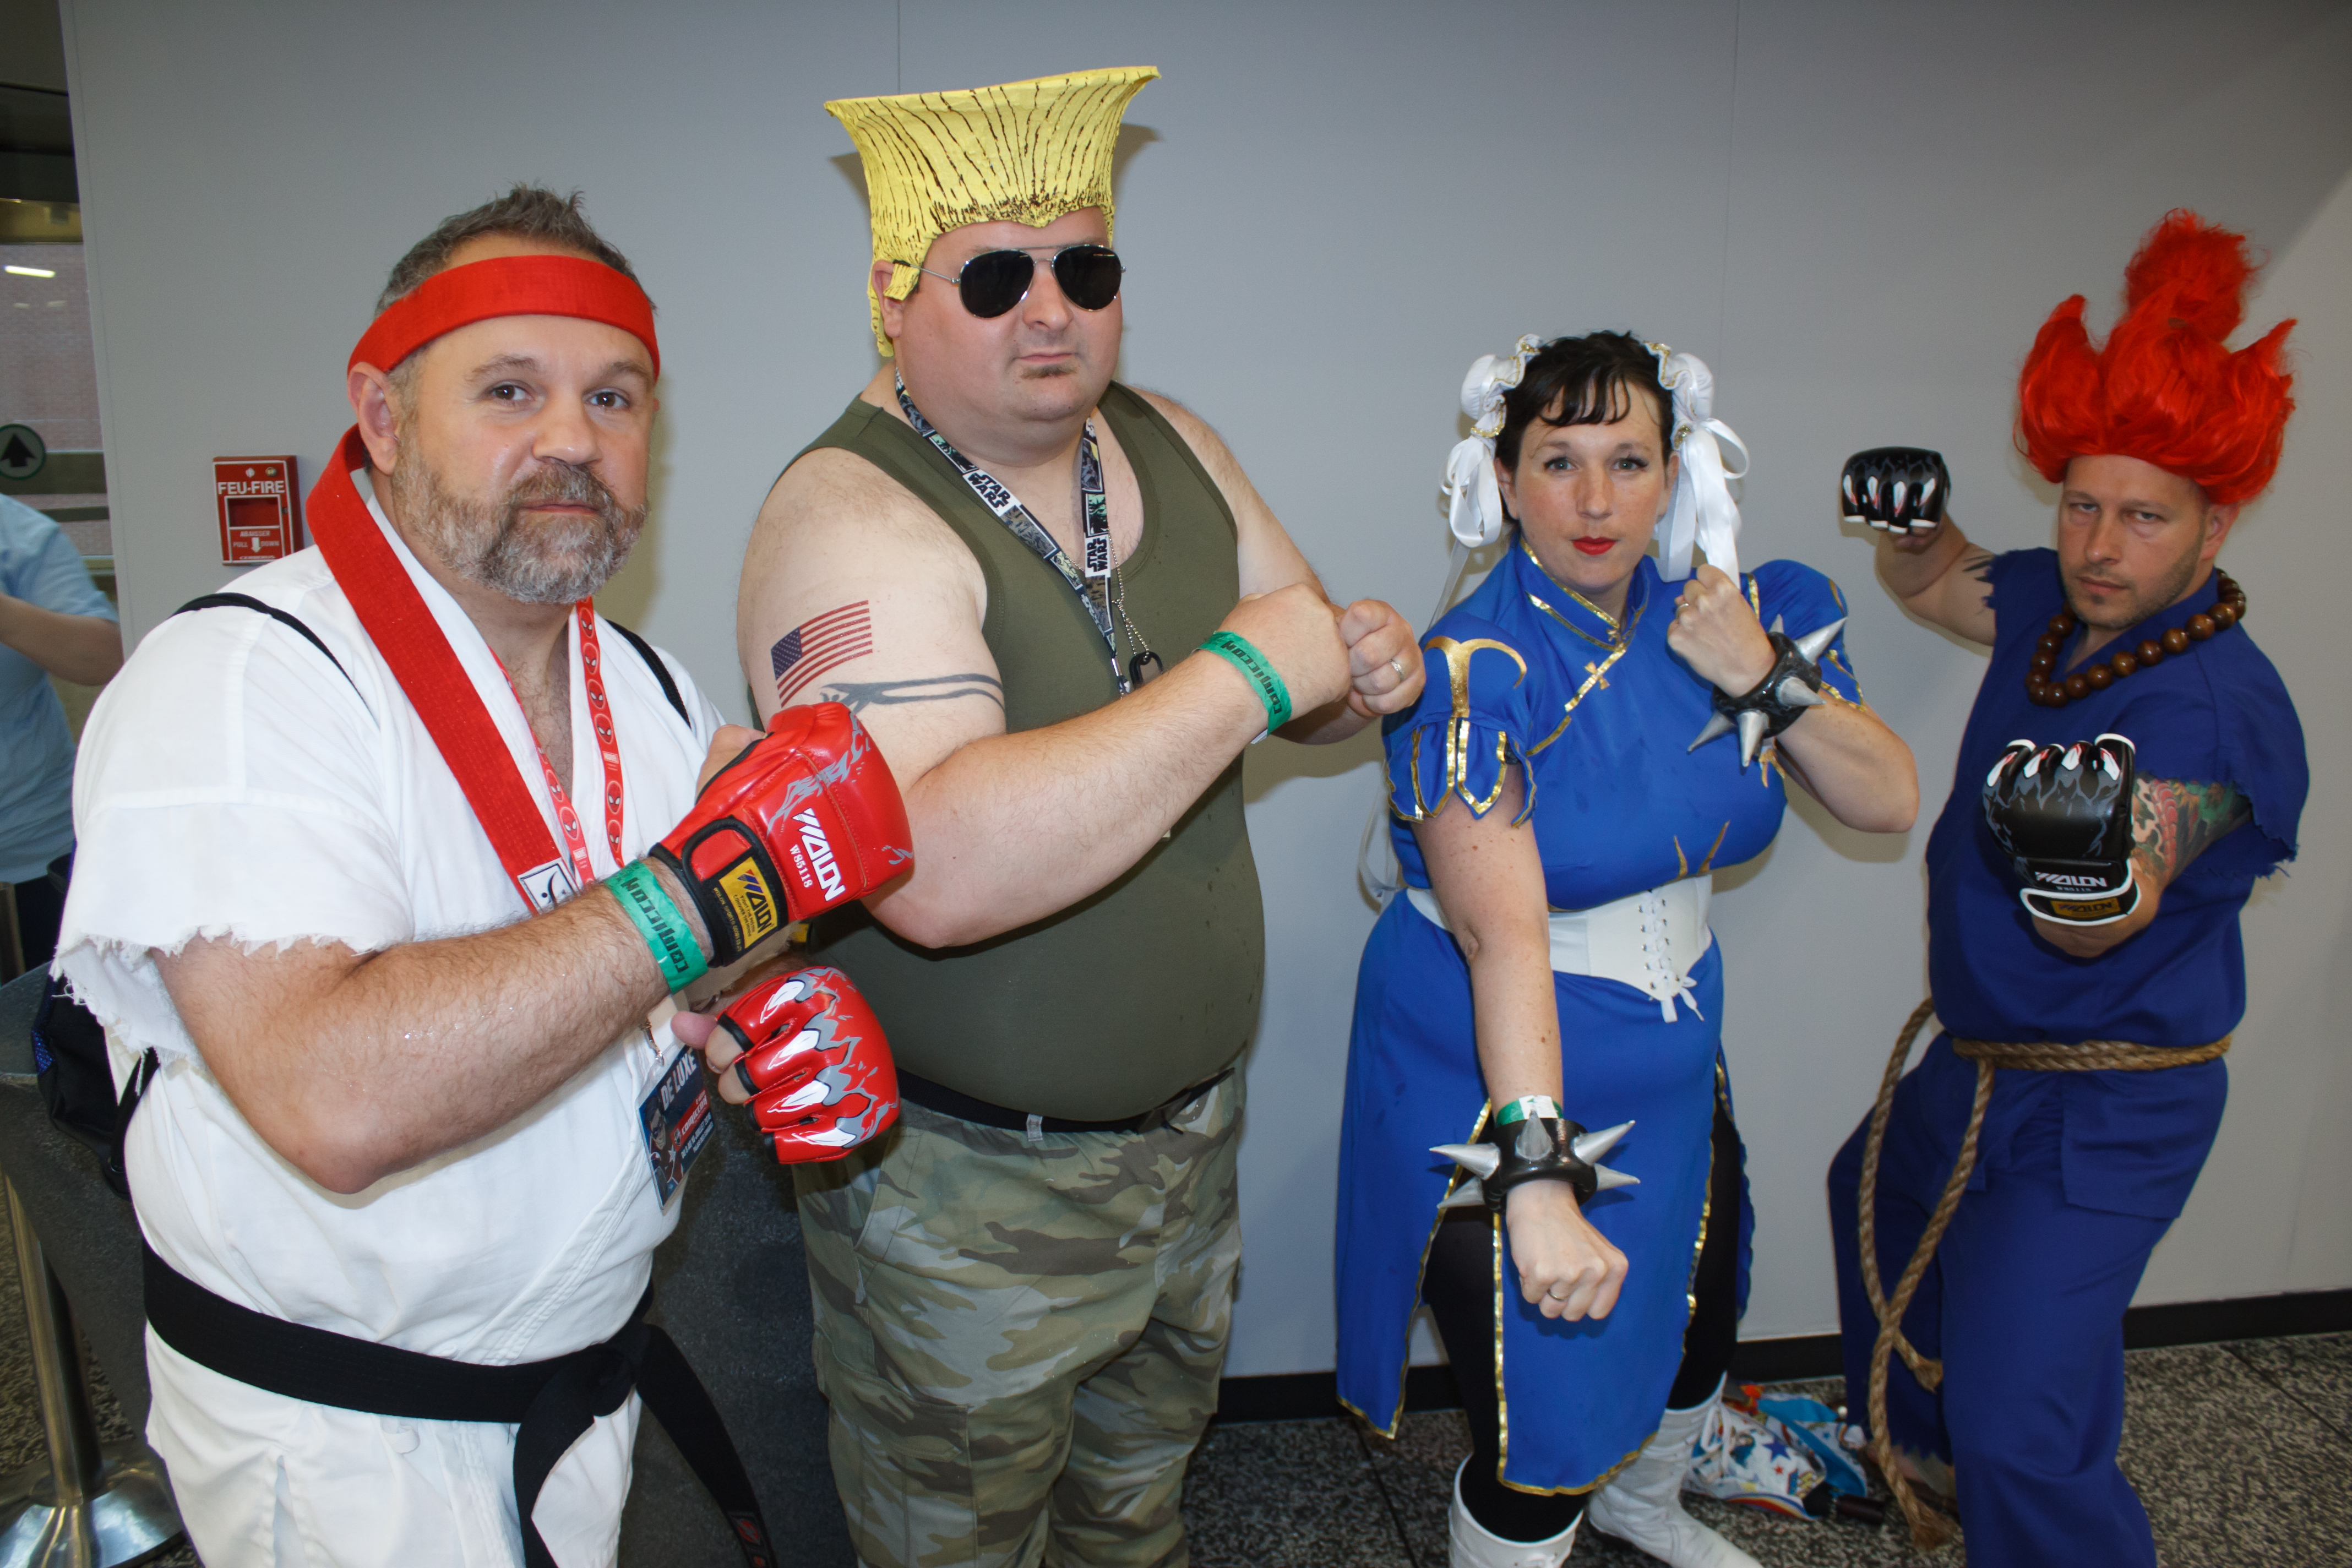 File Montreal Comiccon 2016 Street Fighter 28225349266 Jpg